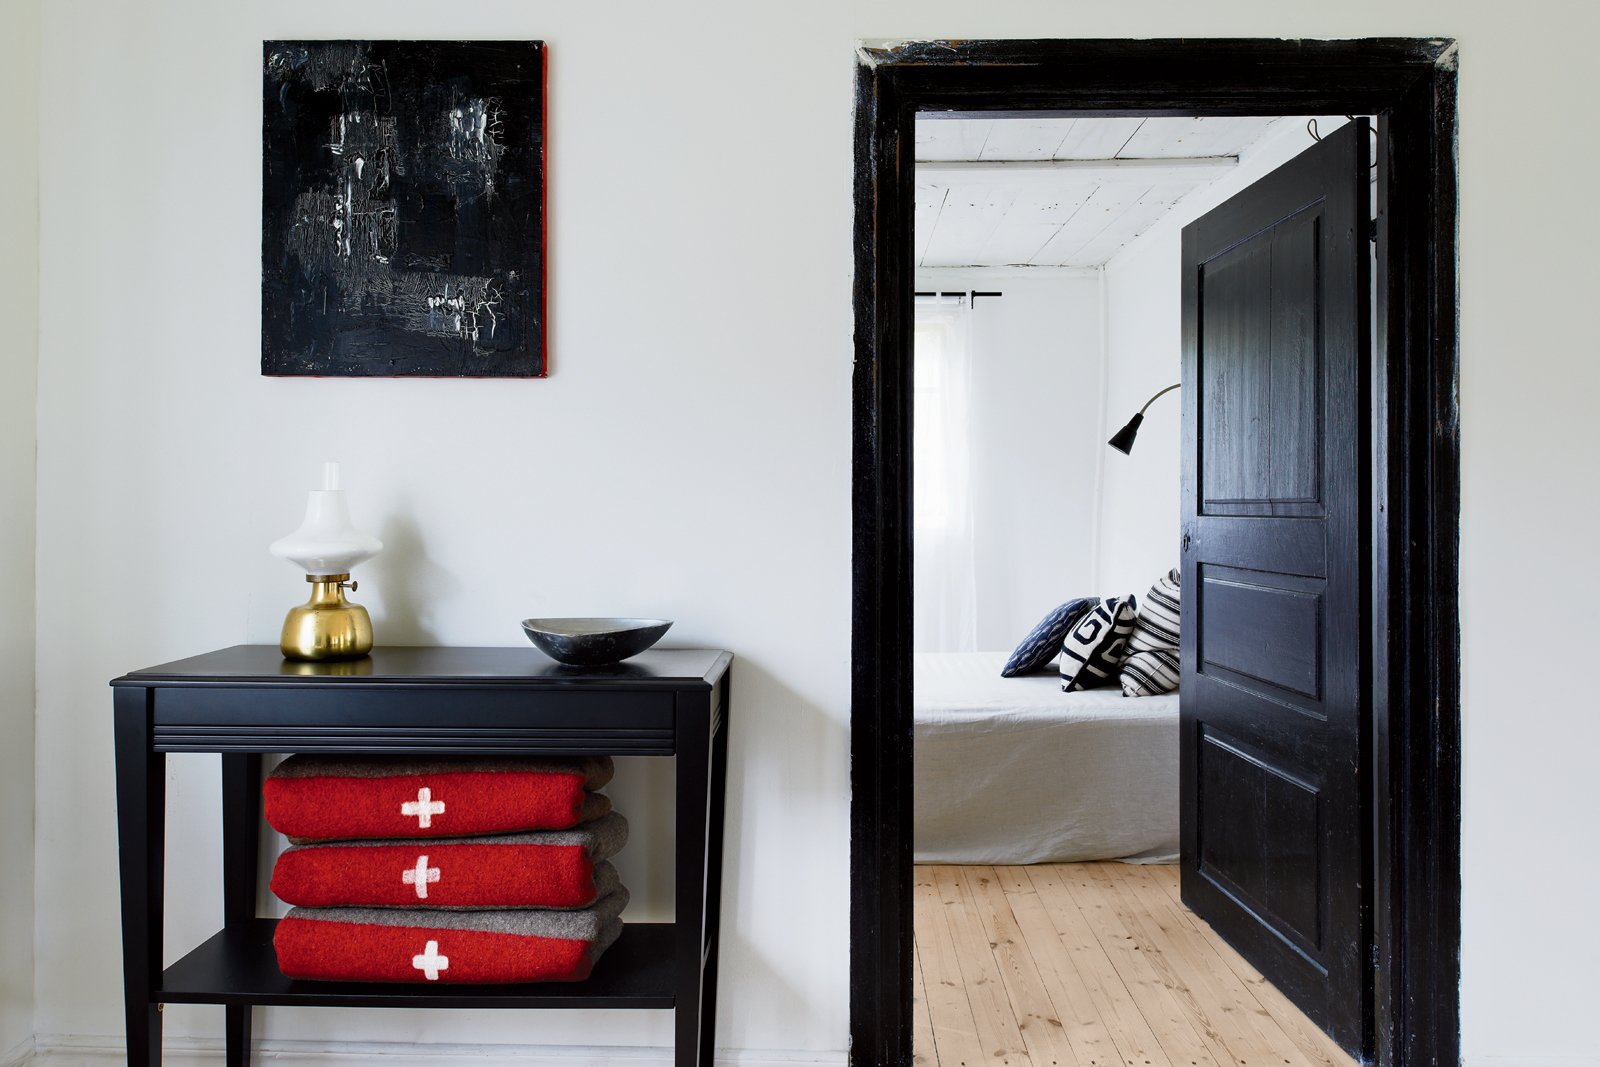 A black side table rests outside the bedroom hallway.  Photos from Modern Meets Traditional in a Swedish Summer House